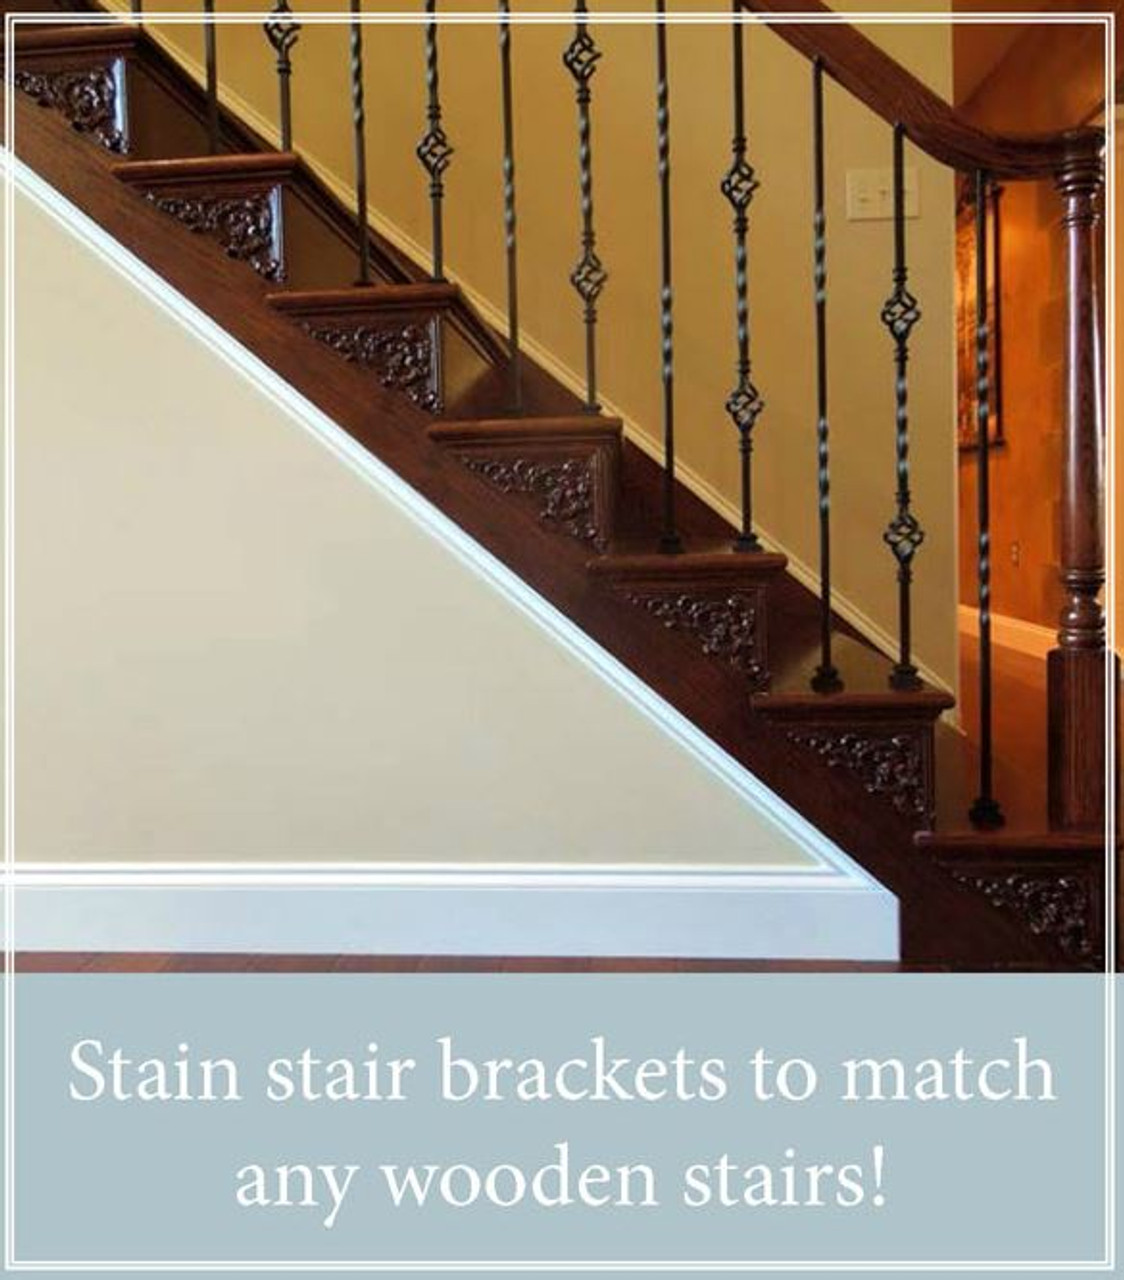 Stair Brackets can be painted or stain to match hardwood millwork